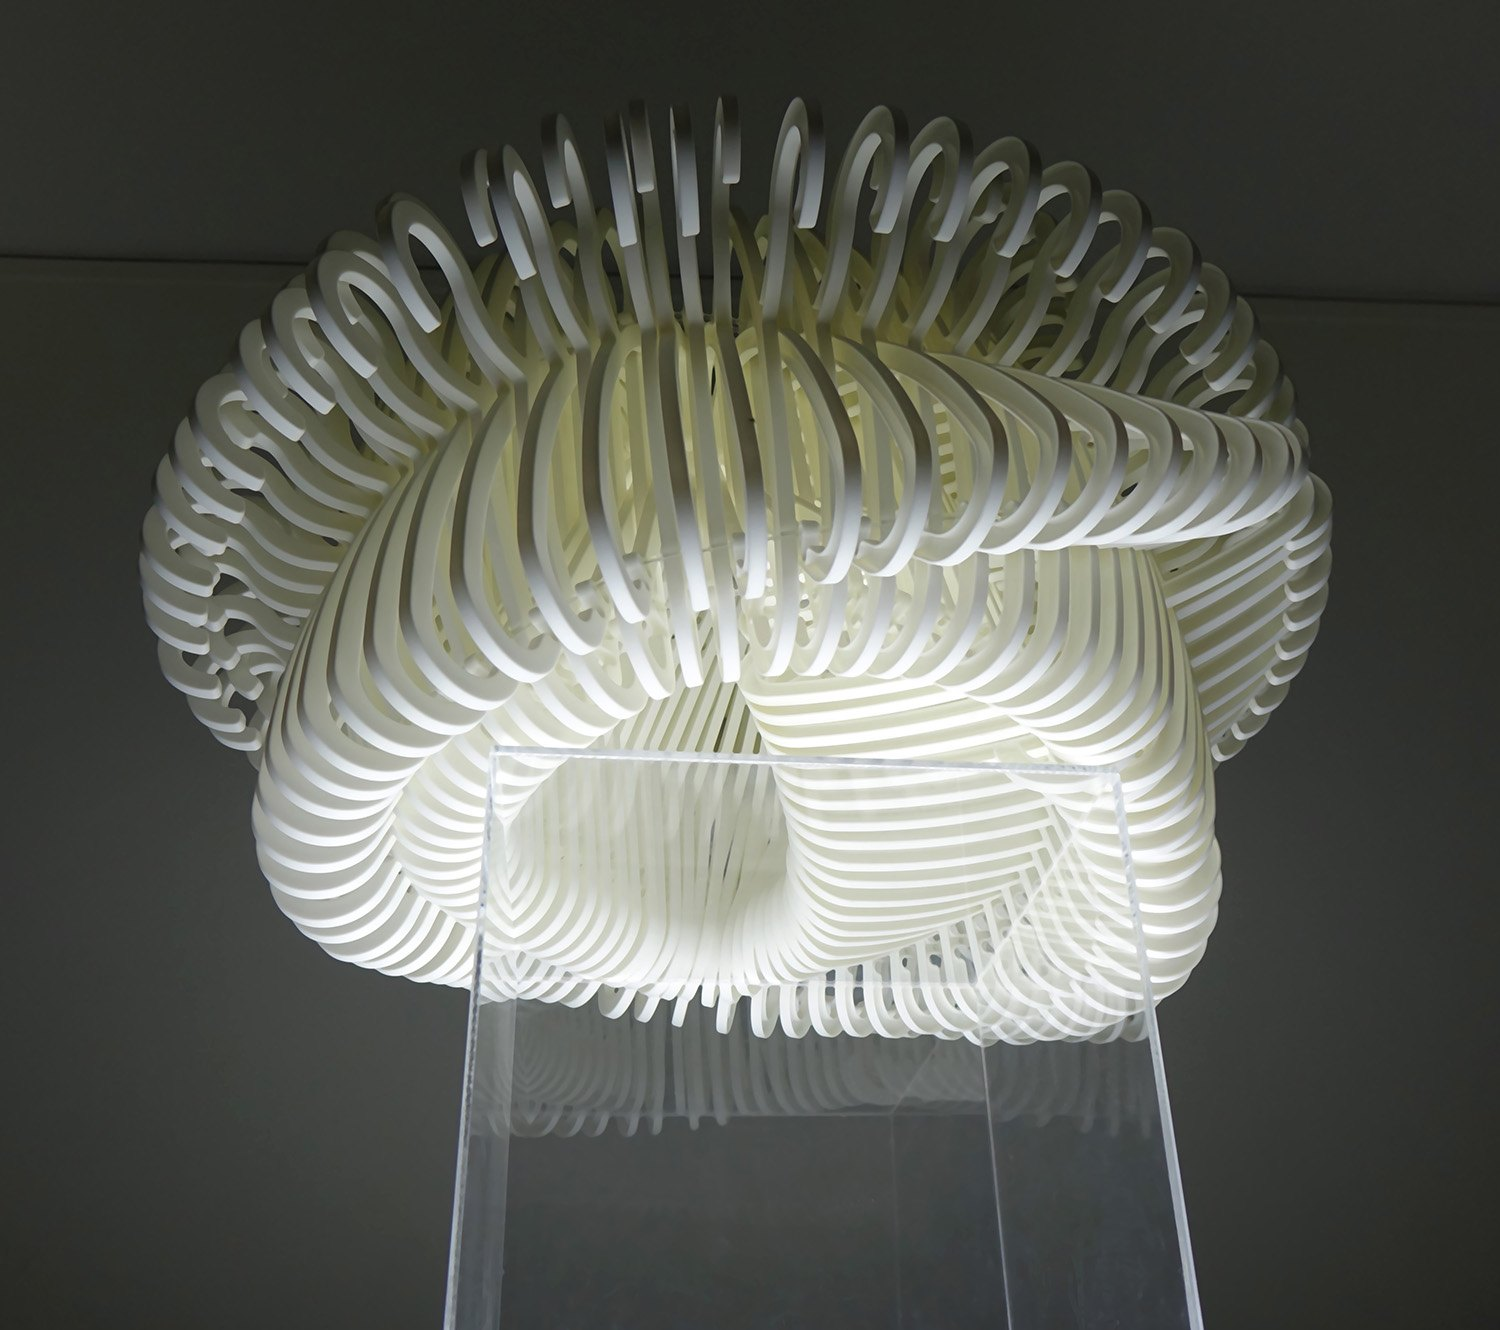 Lit tabletop sculpture